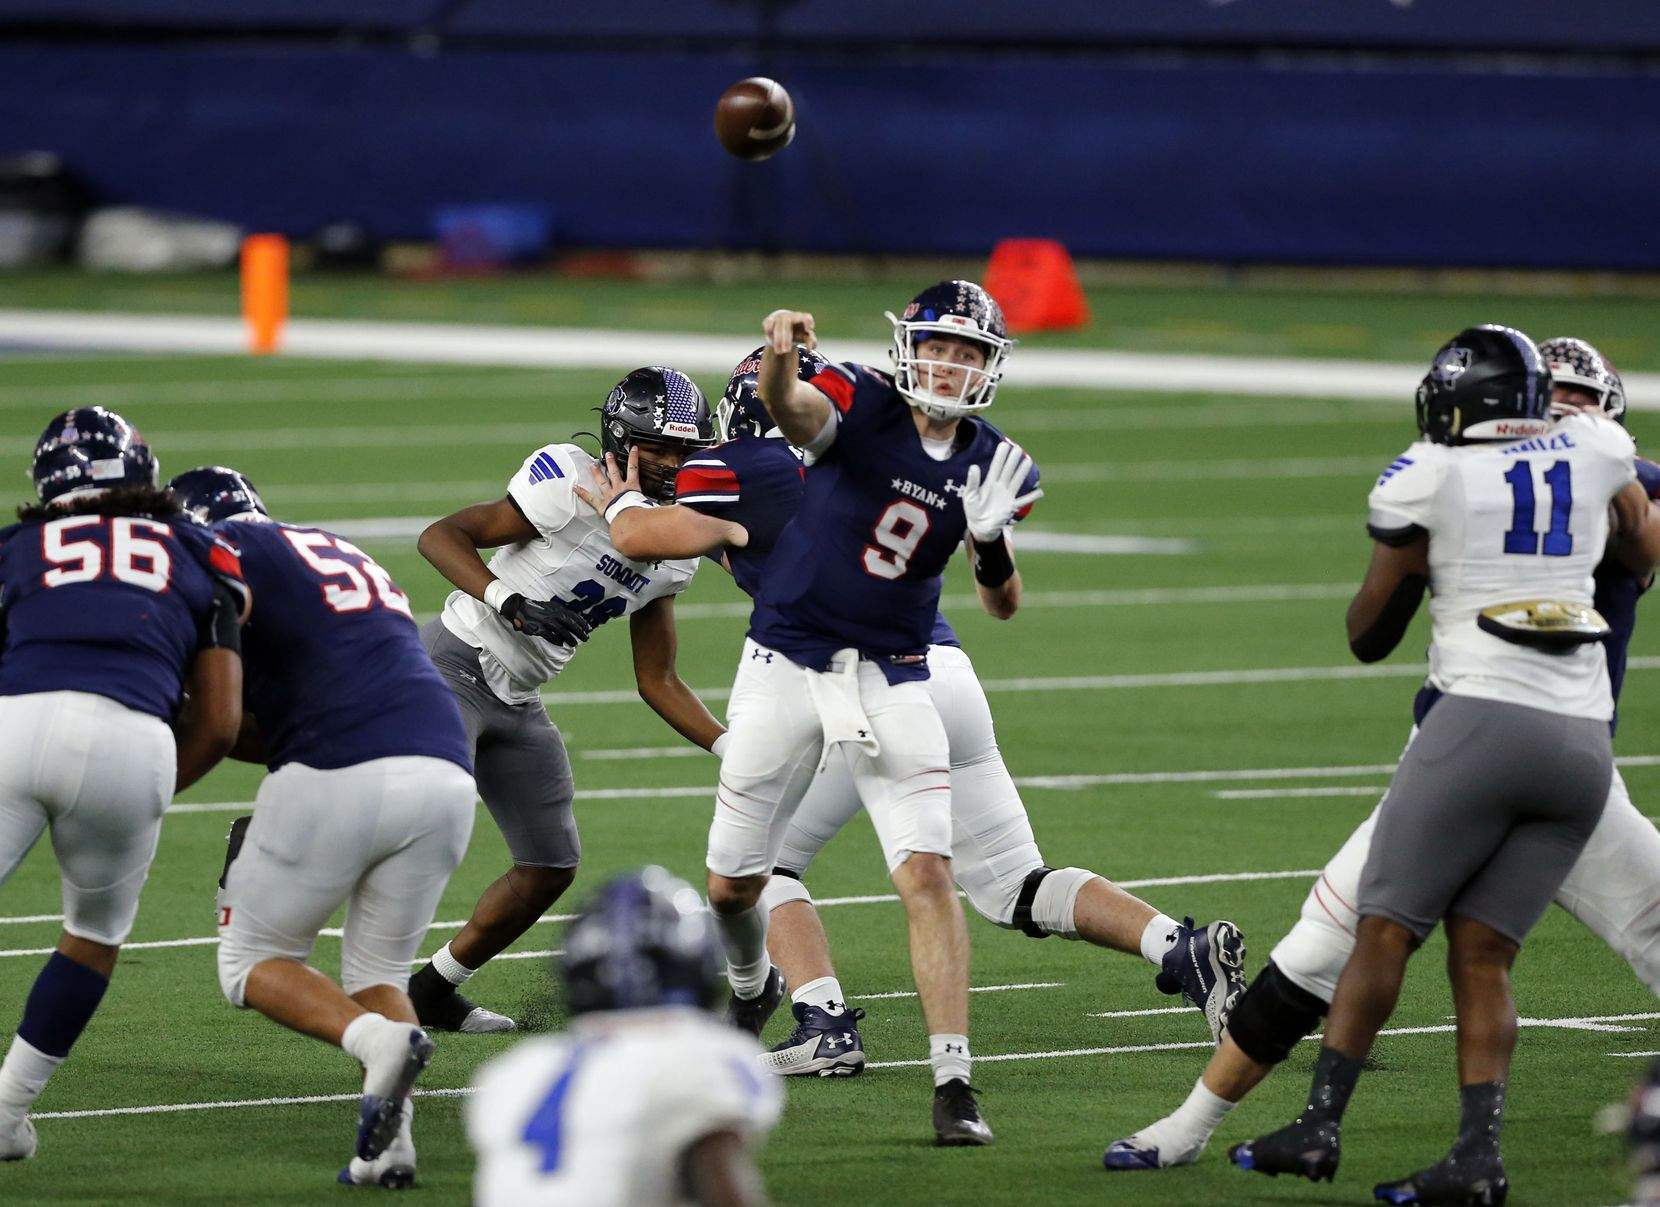 Denton Ryan QB Seth Henigan (9) gets good blocking, as he throws a pass during the first half of the Class 5A Division I state semifinal football playoff game against Mansfield Summit High at AT&T Stadium in Arlington on Friday, January 8, 2021. (John F. Rhodes / Special Contributor)